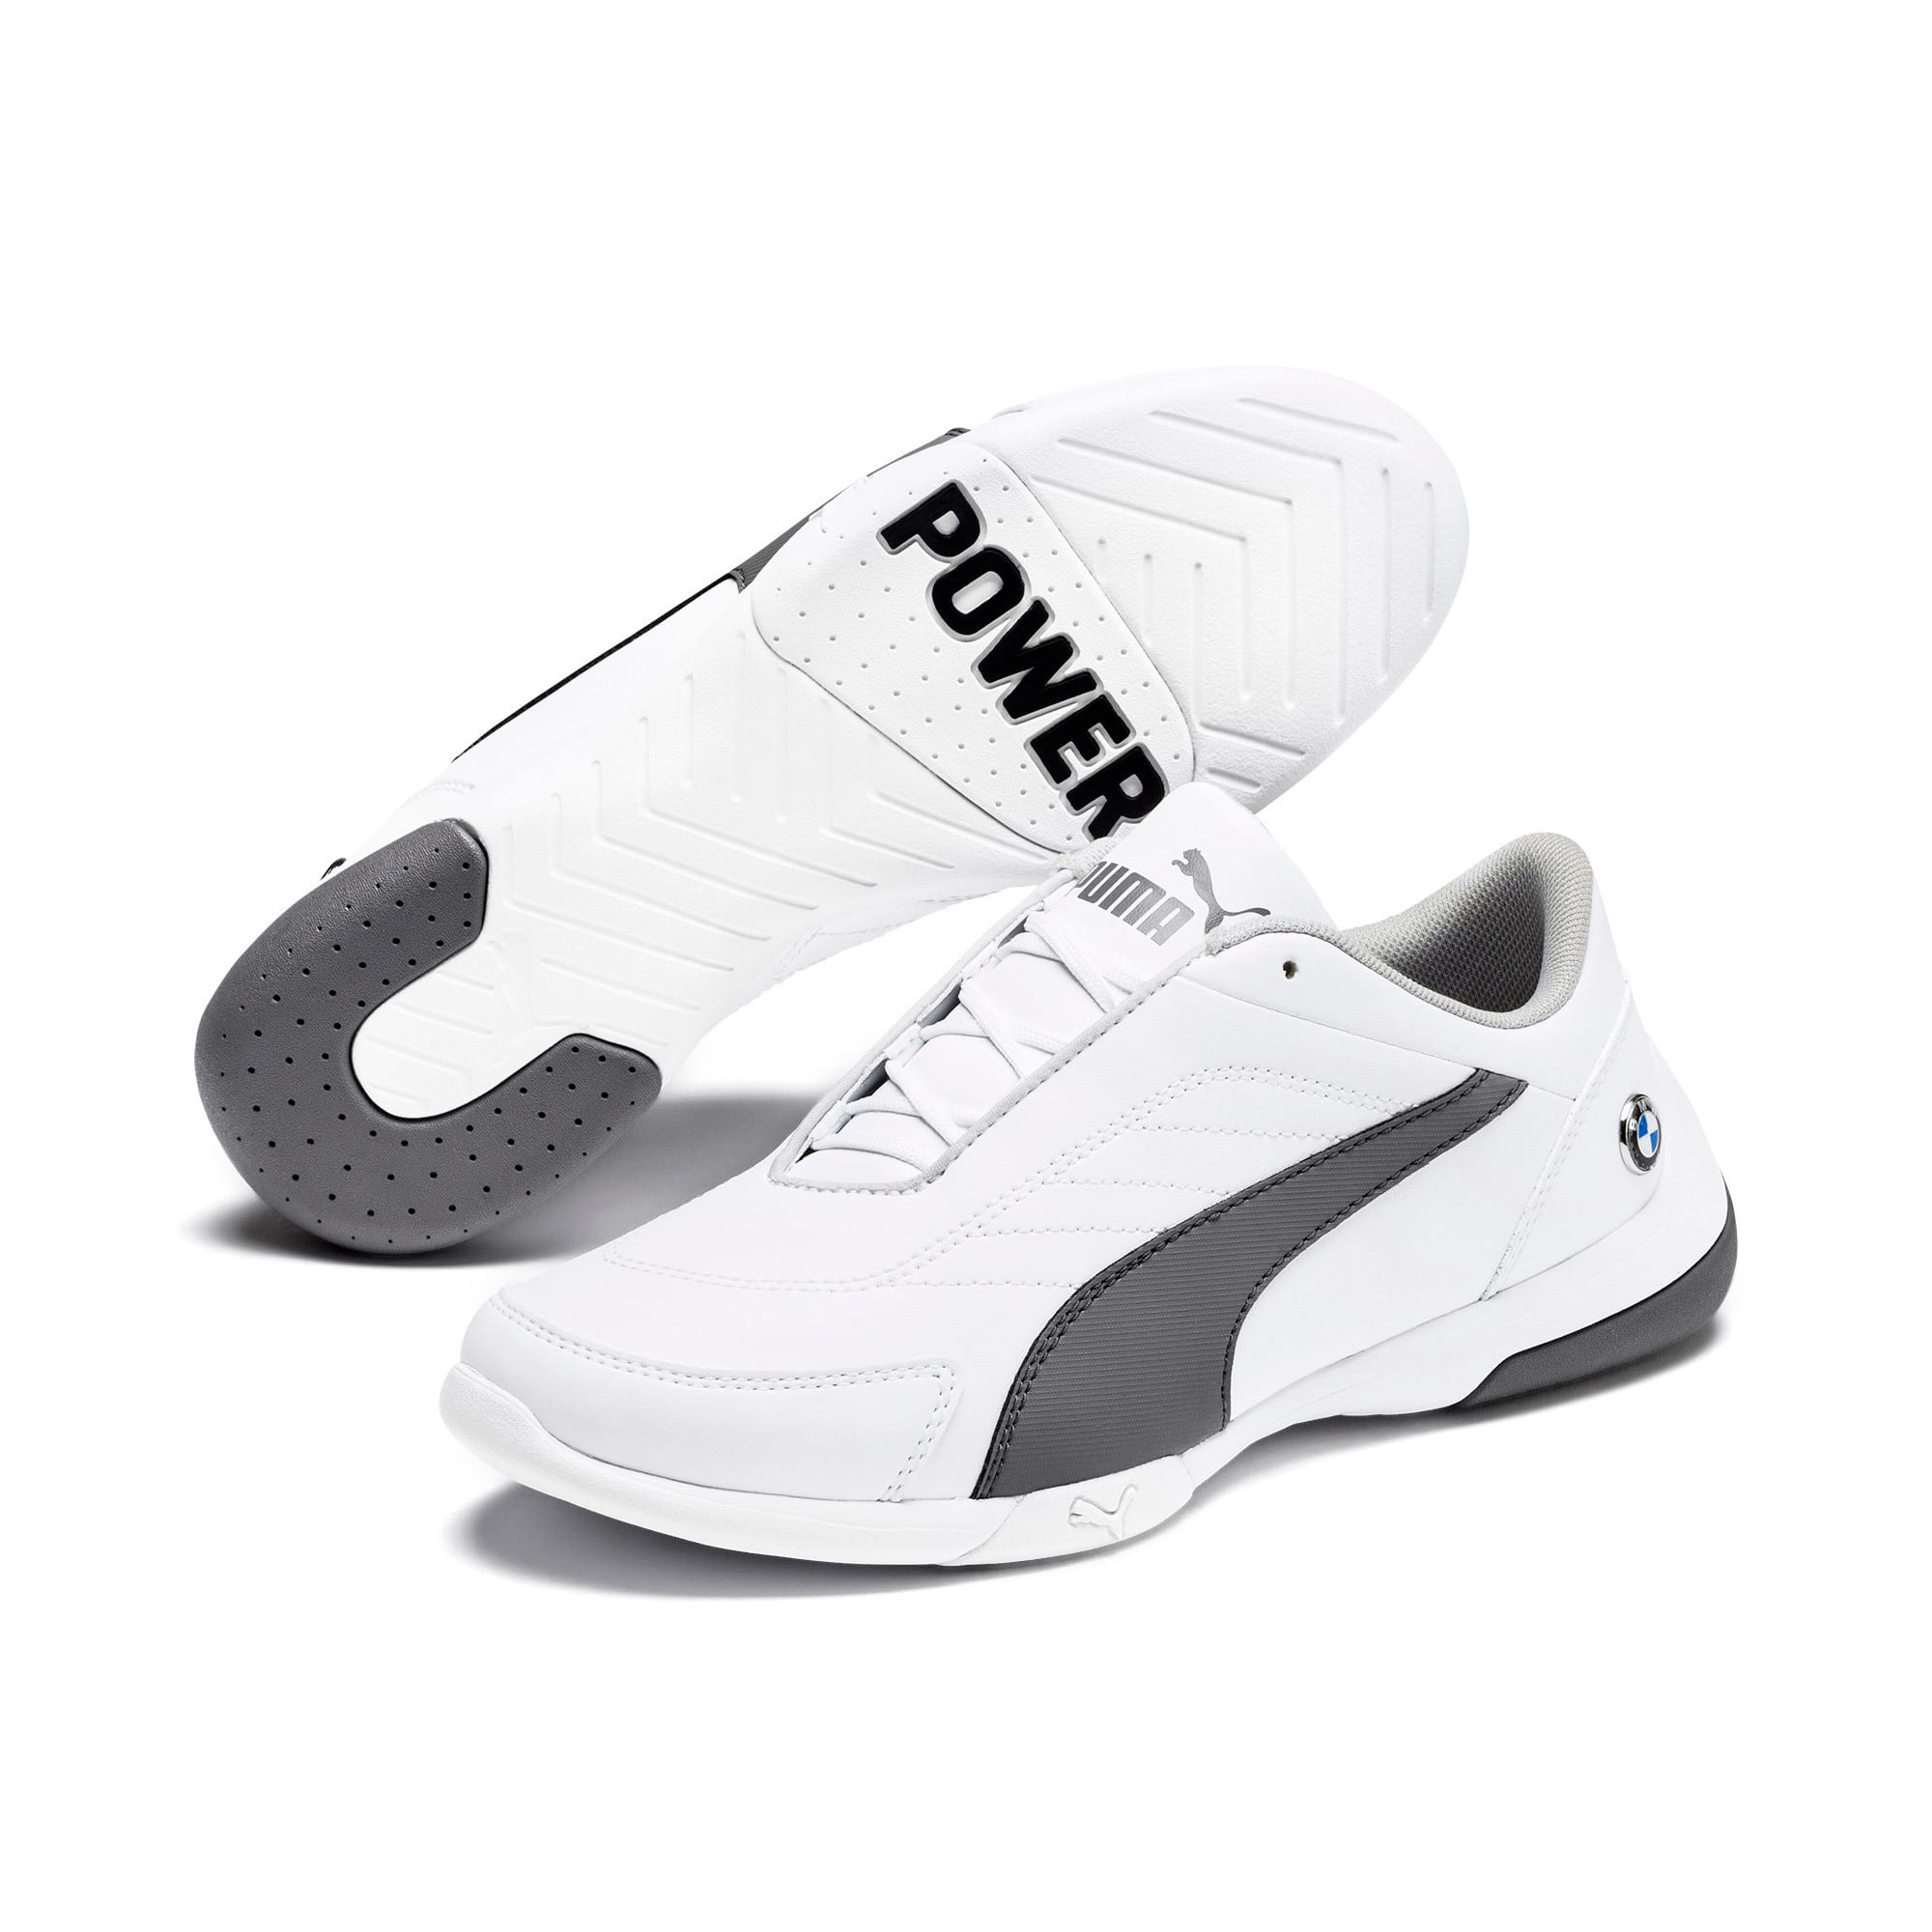 Thumbnail 2 of BMW M Kart Cat III Youth Trainers, Puma White-Smoked Pearl, medium-IND